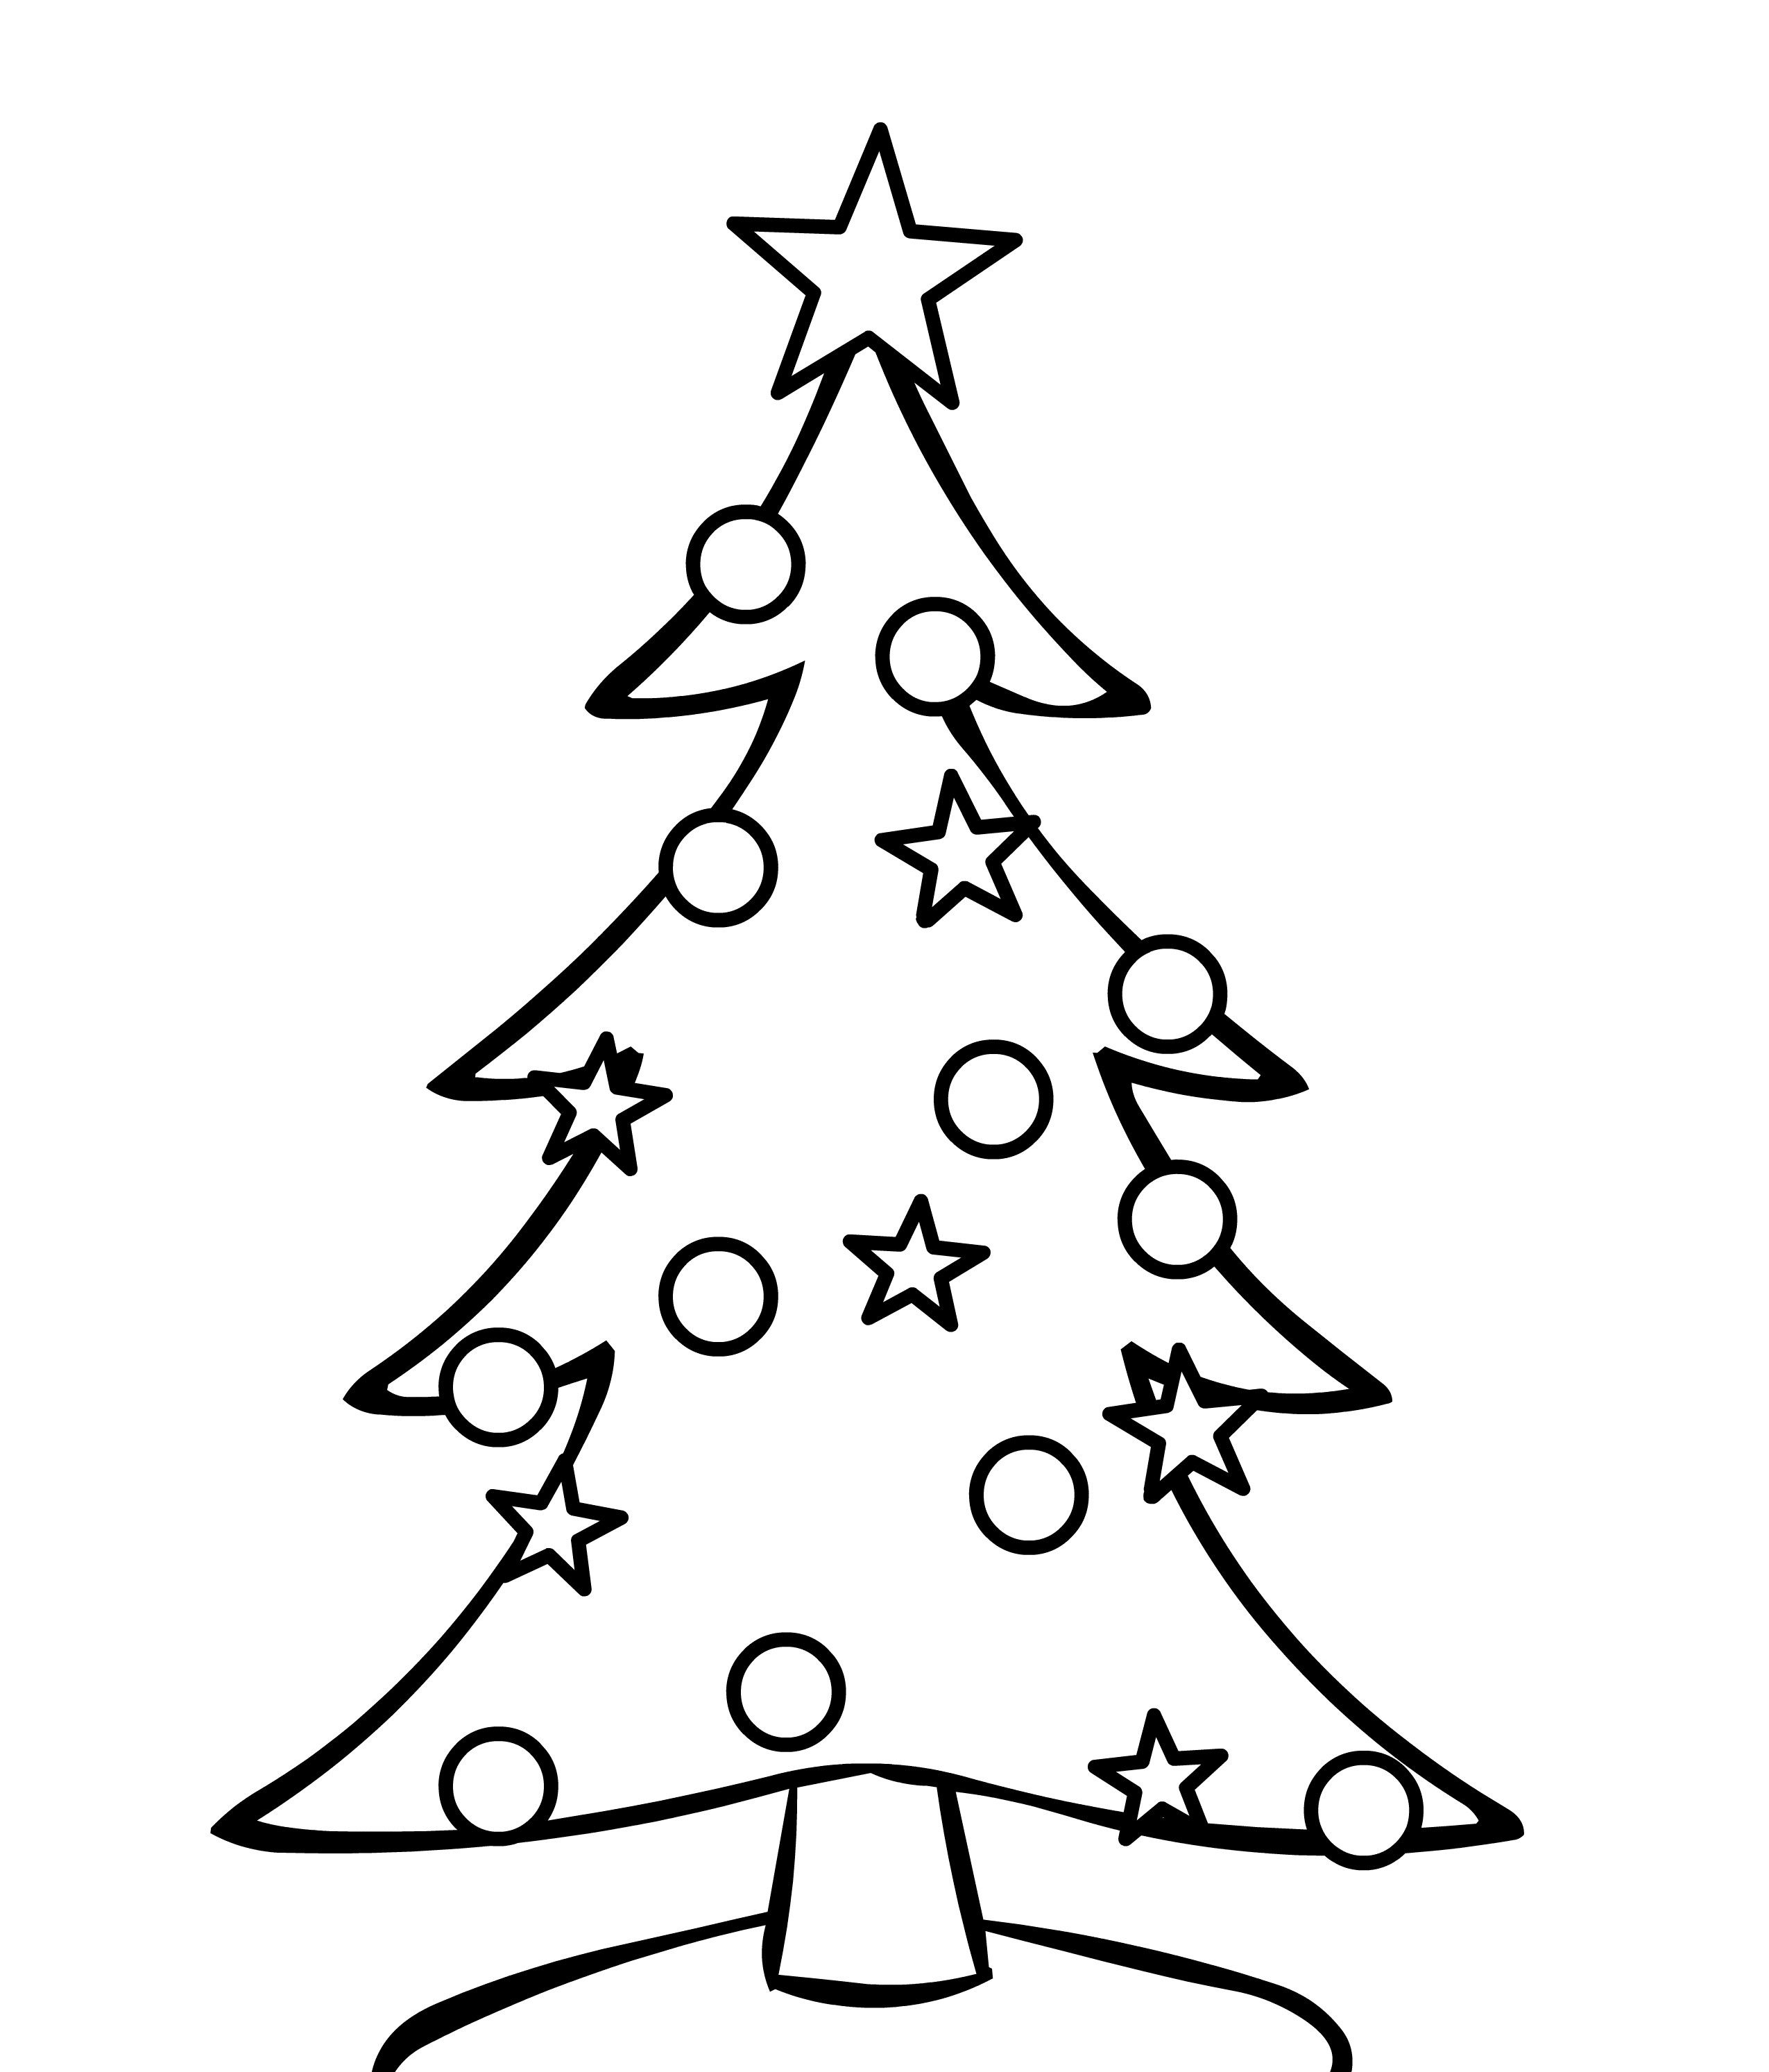 Christmas Tree Coloring Pages For Children Drawing Colouring 2550 2986 Dazzling Trees To Colour I Weihnachtsbaum Vorlage Bunter Weihnachtsbaum Weihnachtsfarben